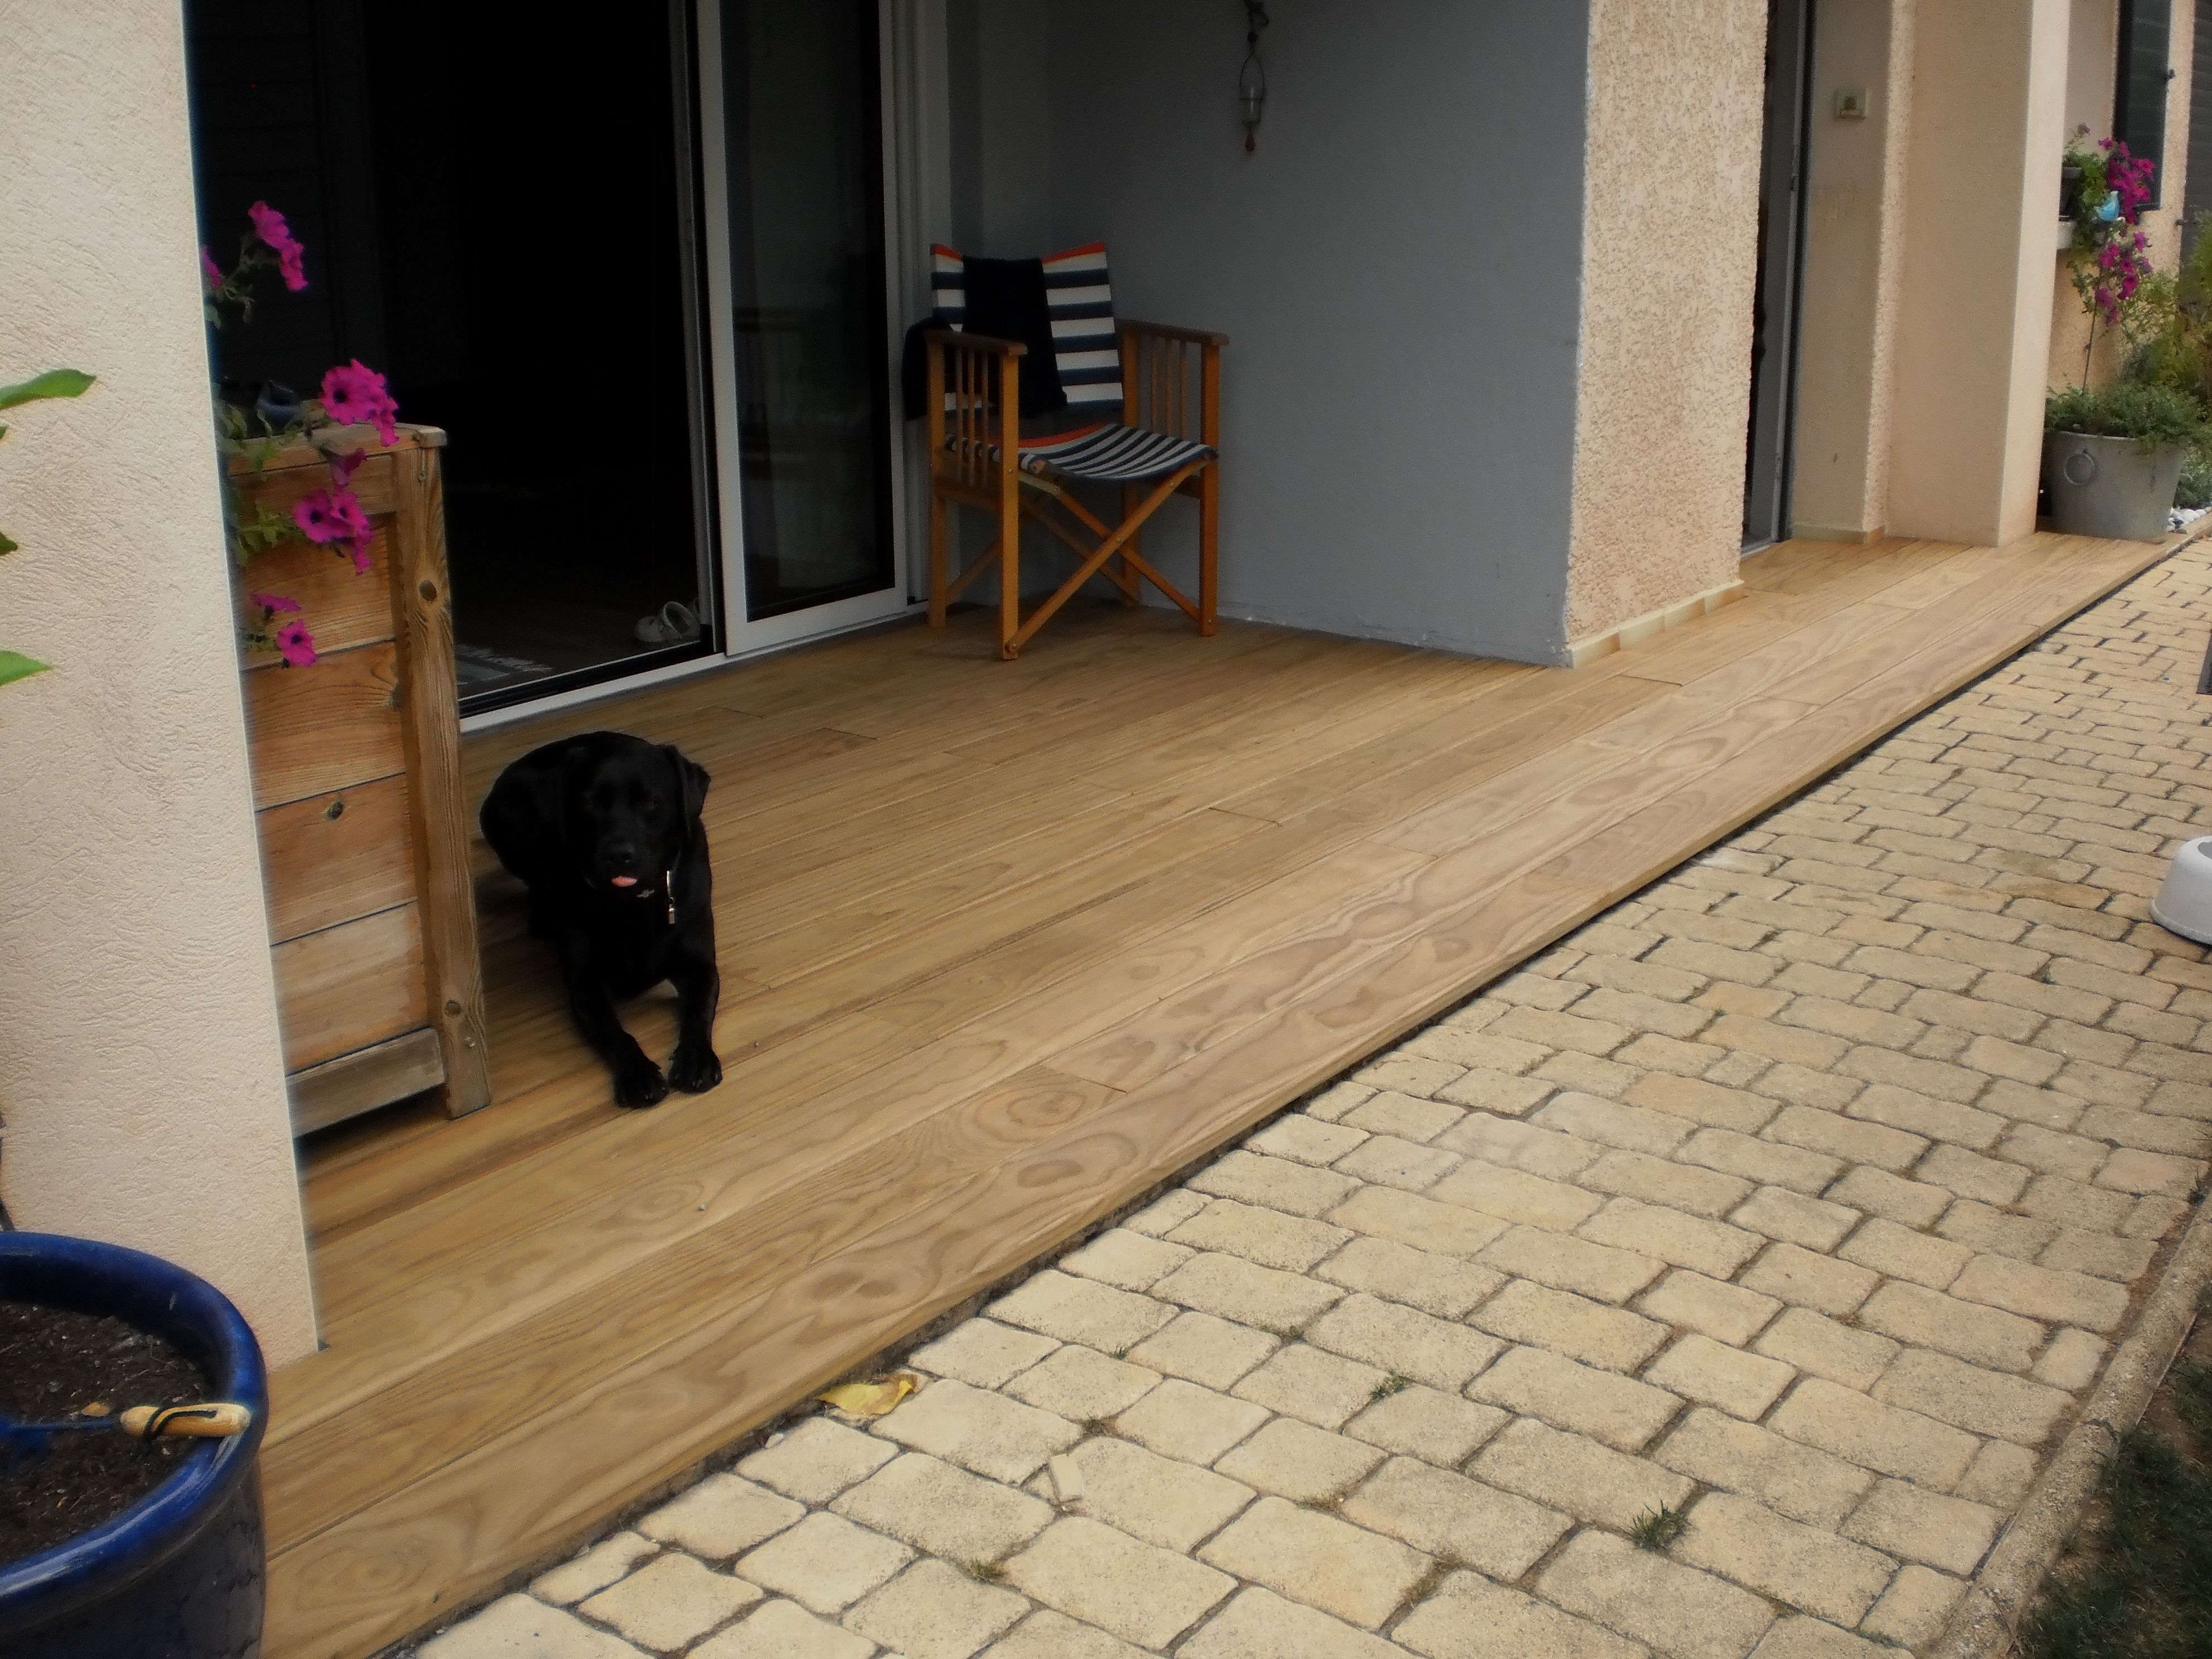 Pose Terrasse Bois Sur Carrelage Terrasse En Bois Pin Radiata Fixations Invisibles Happax